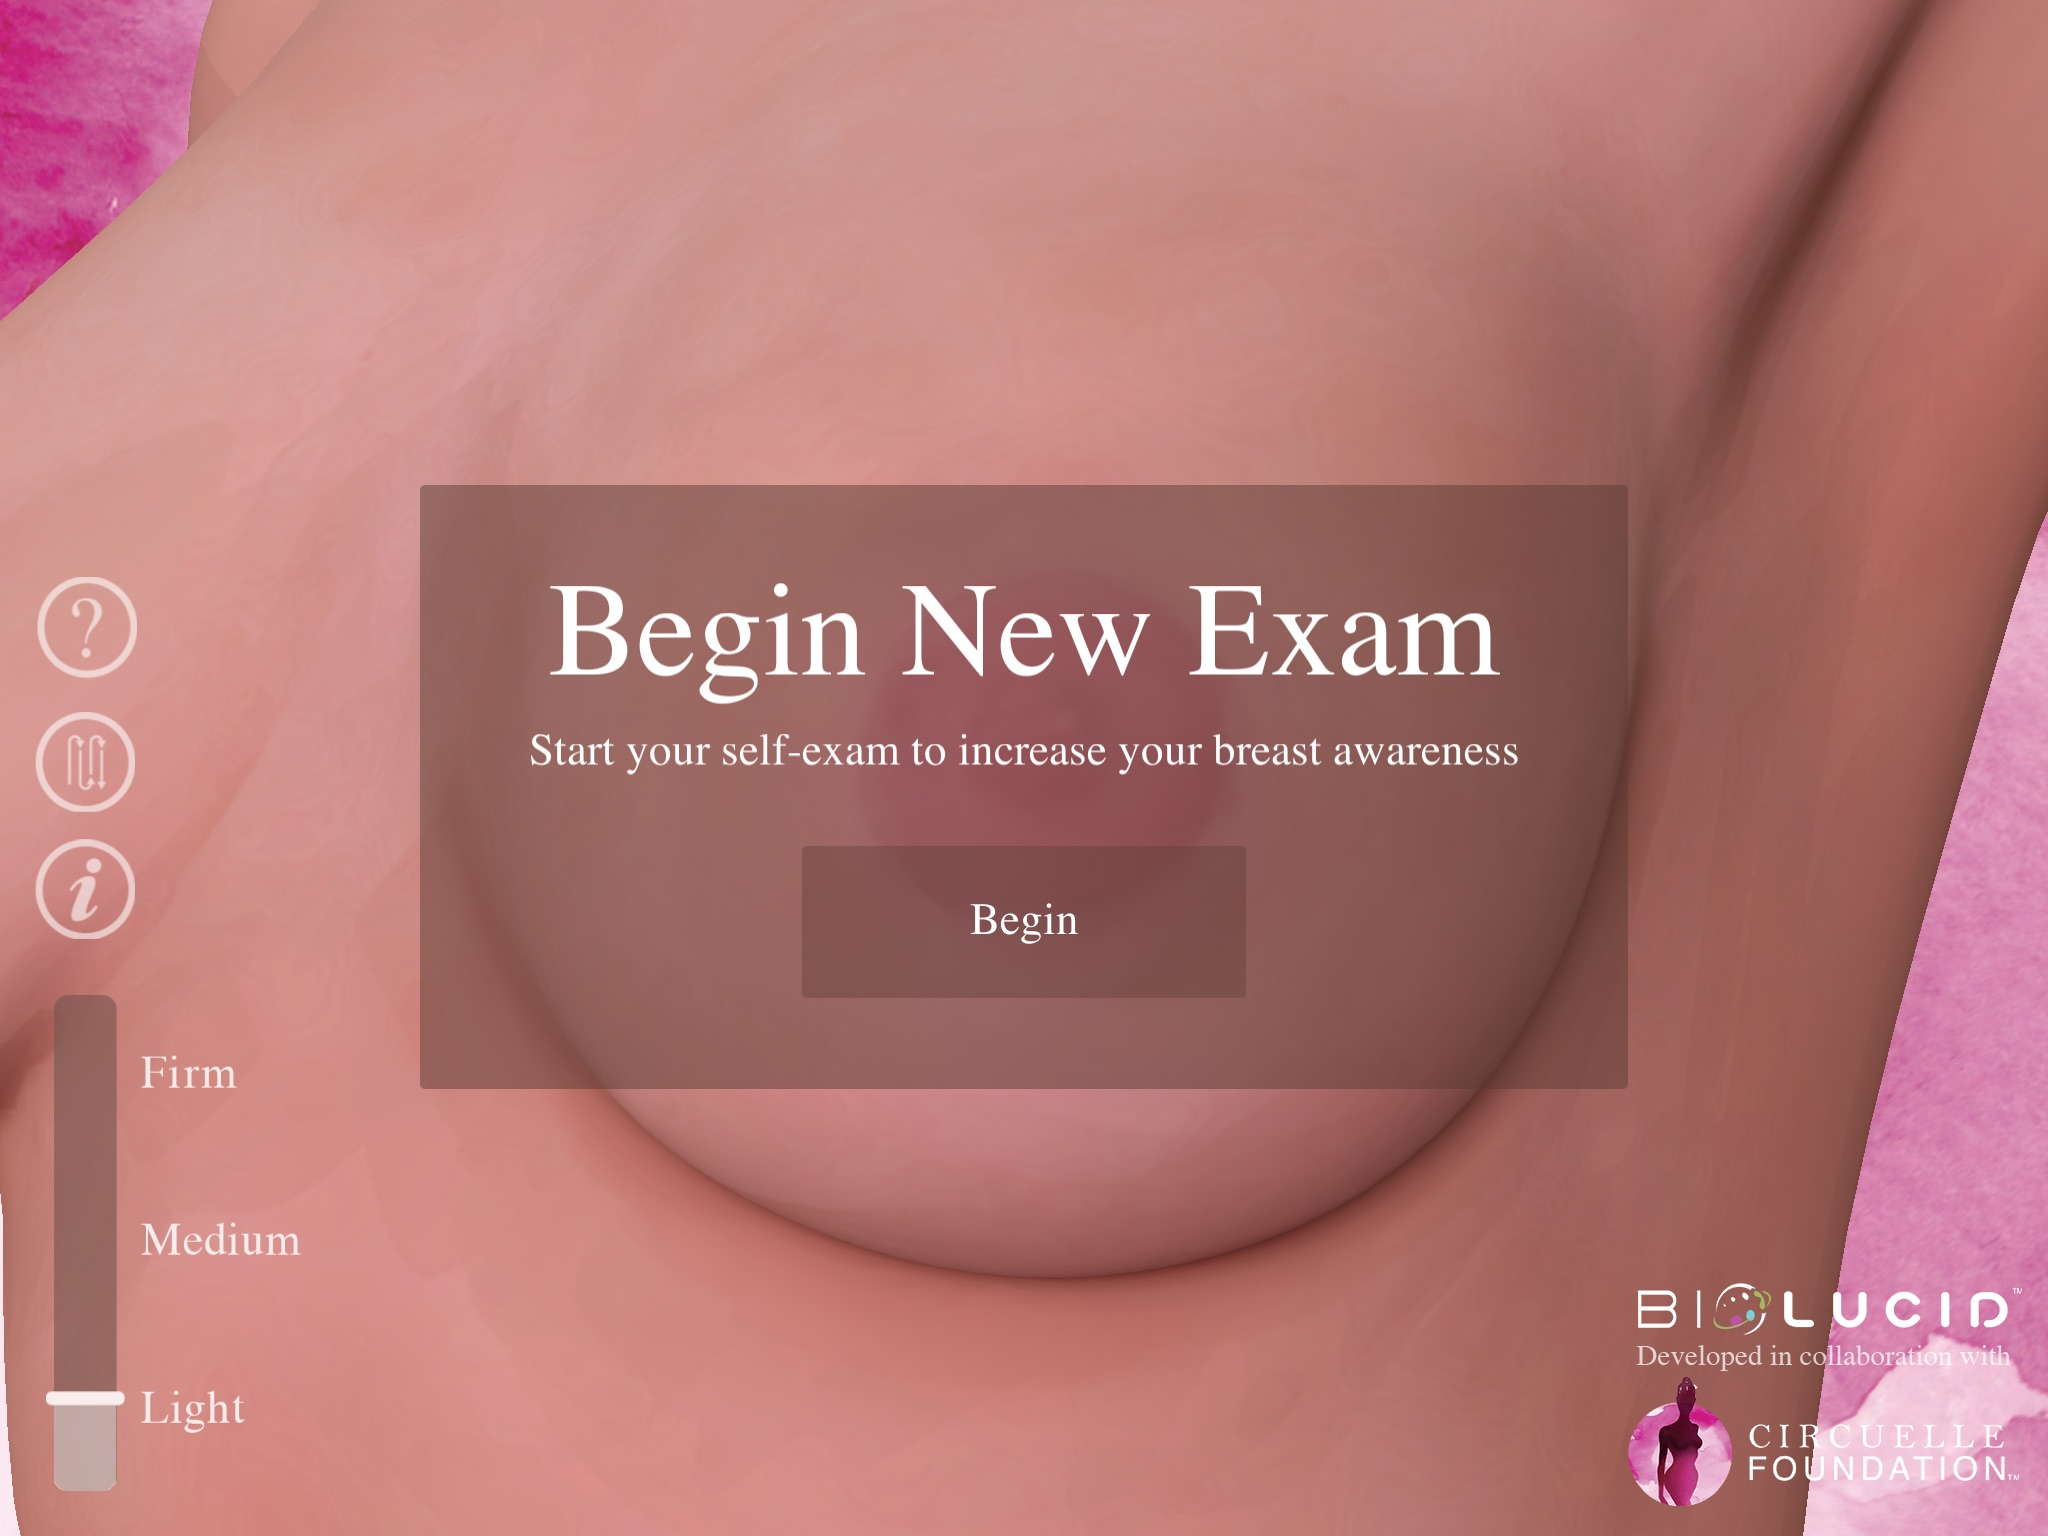 Circuelle Know Your Breasts app 2